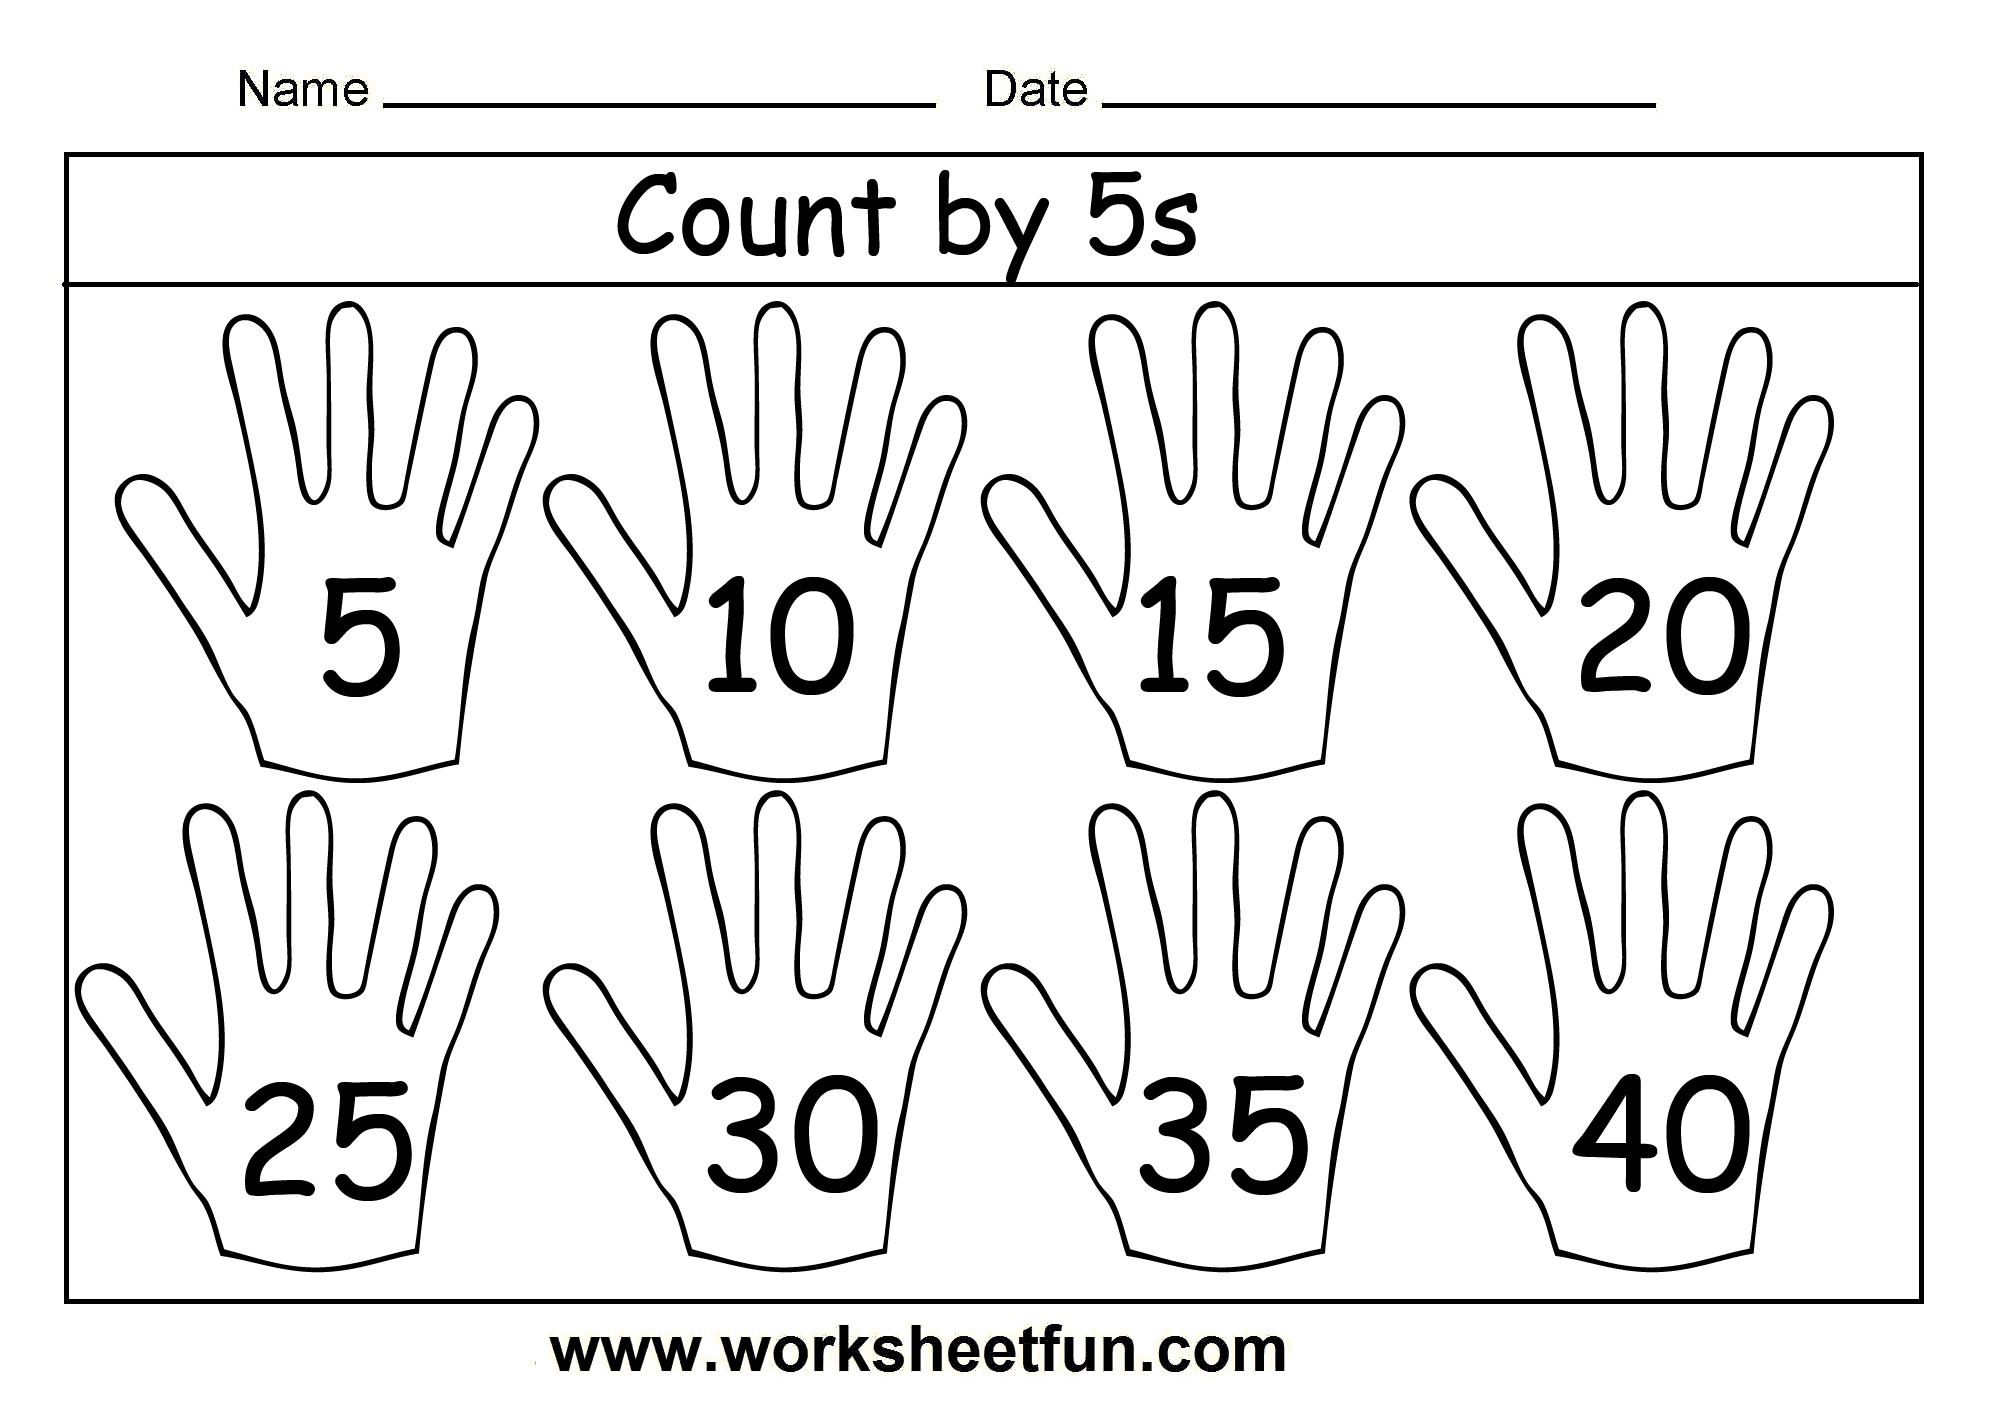 Count by 5s - 3 Worksheets | Education | Pinterest